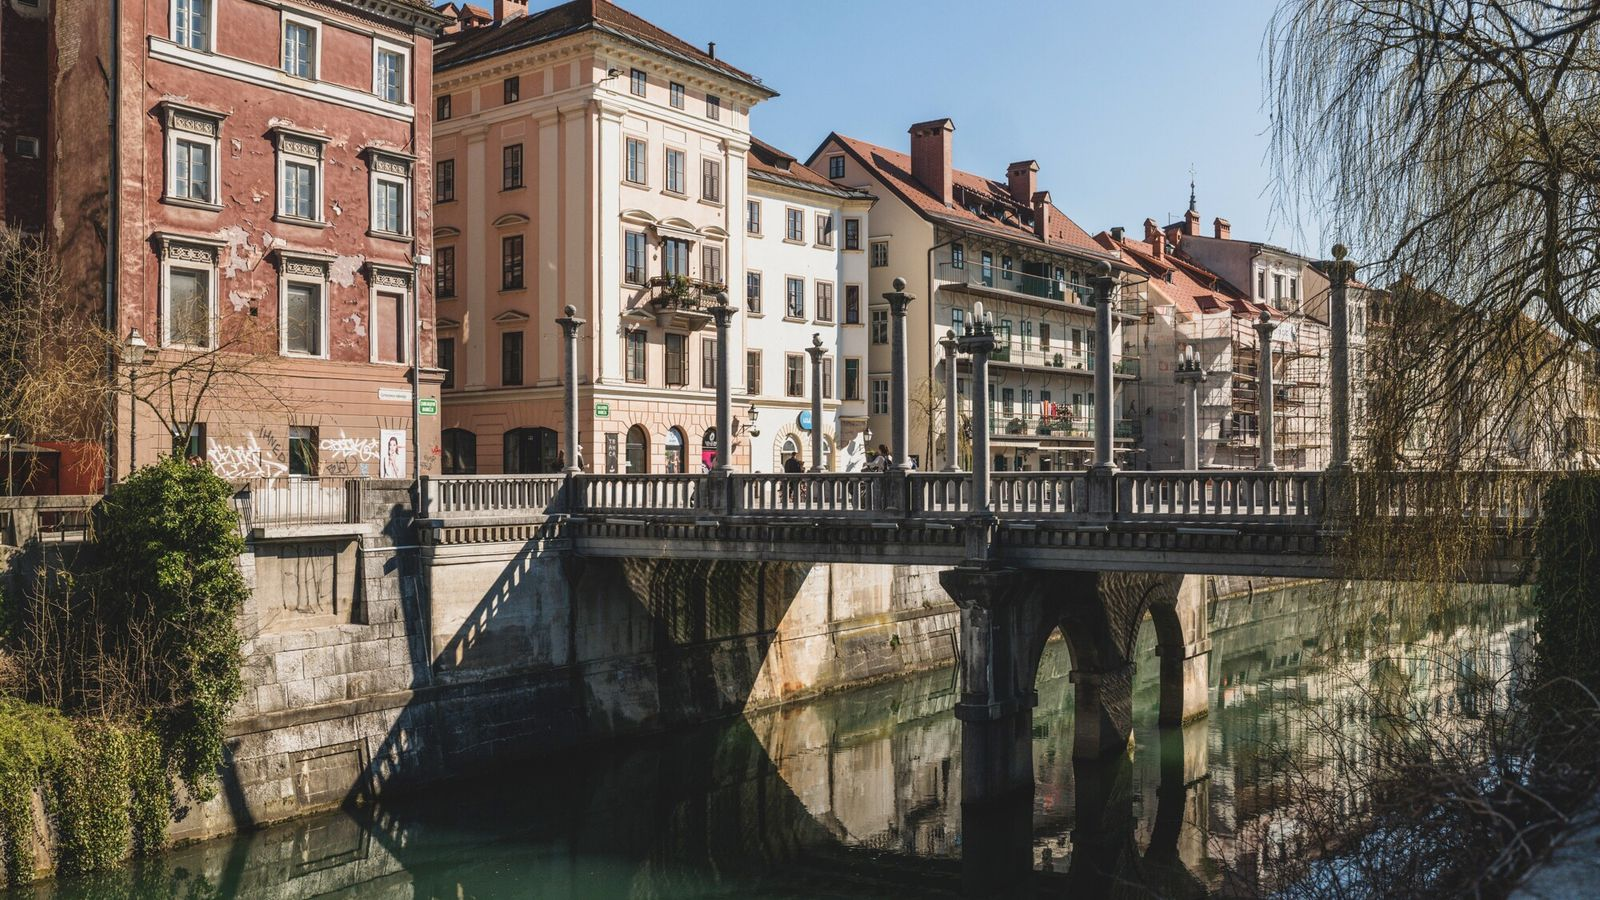 The Ljubljanica river is key to life here; a central artery where students come to drink craft ...